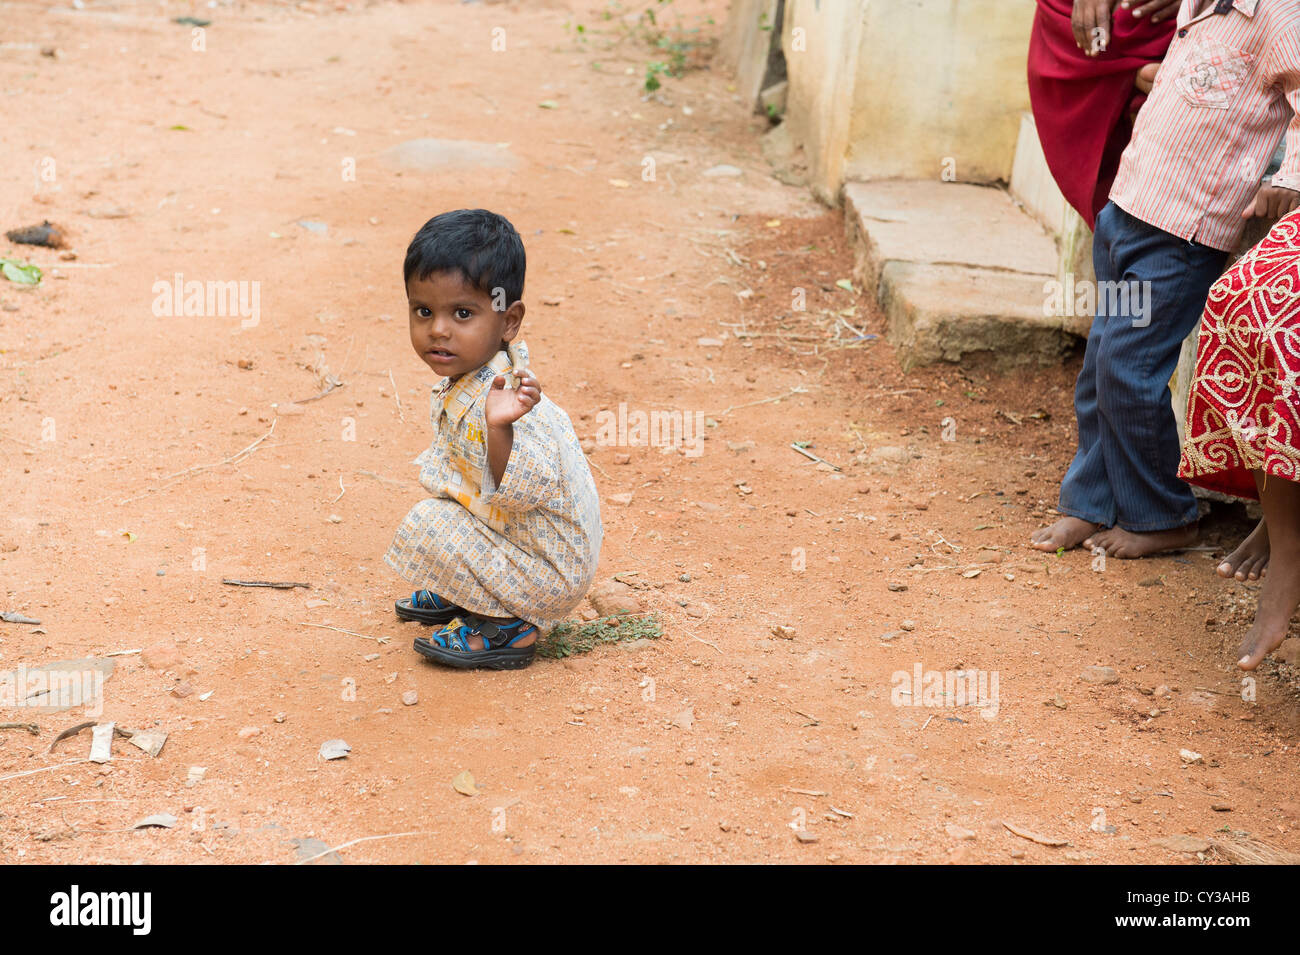 Small indian boy playing with a stick in a rural indian village. Andhra Pradesh, India - Stock Image